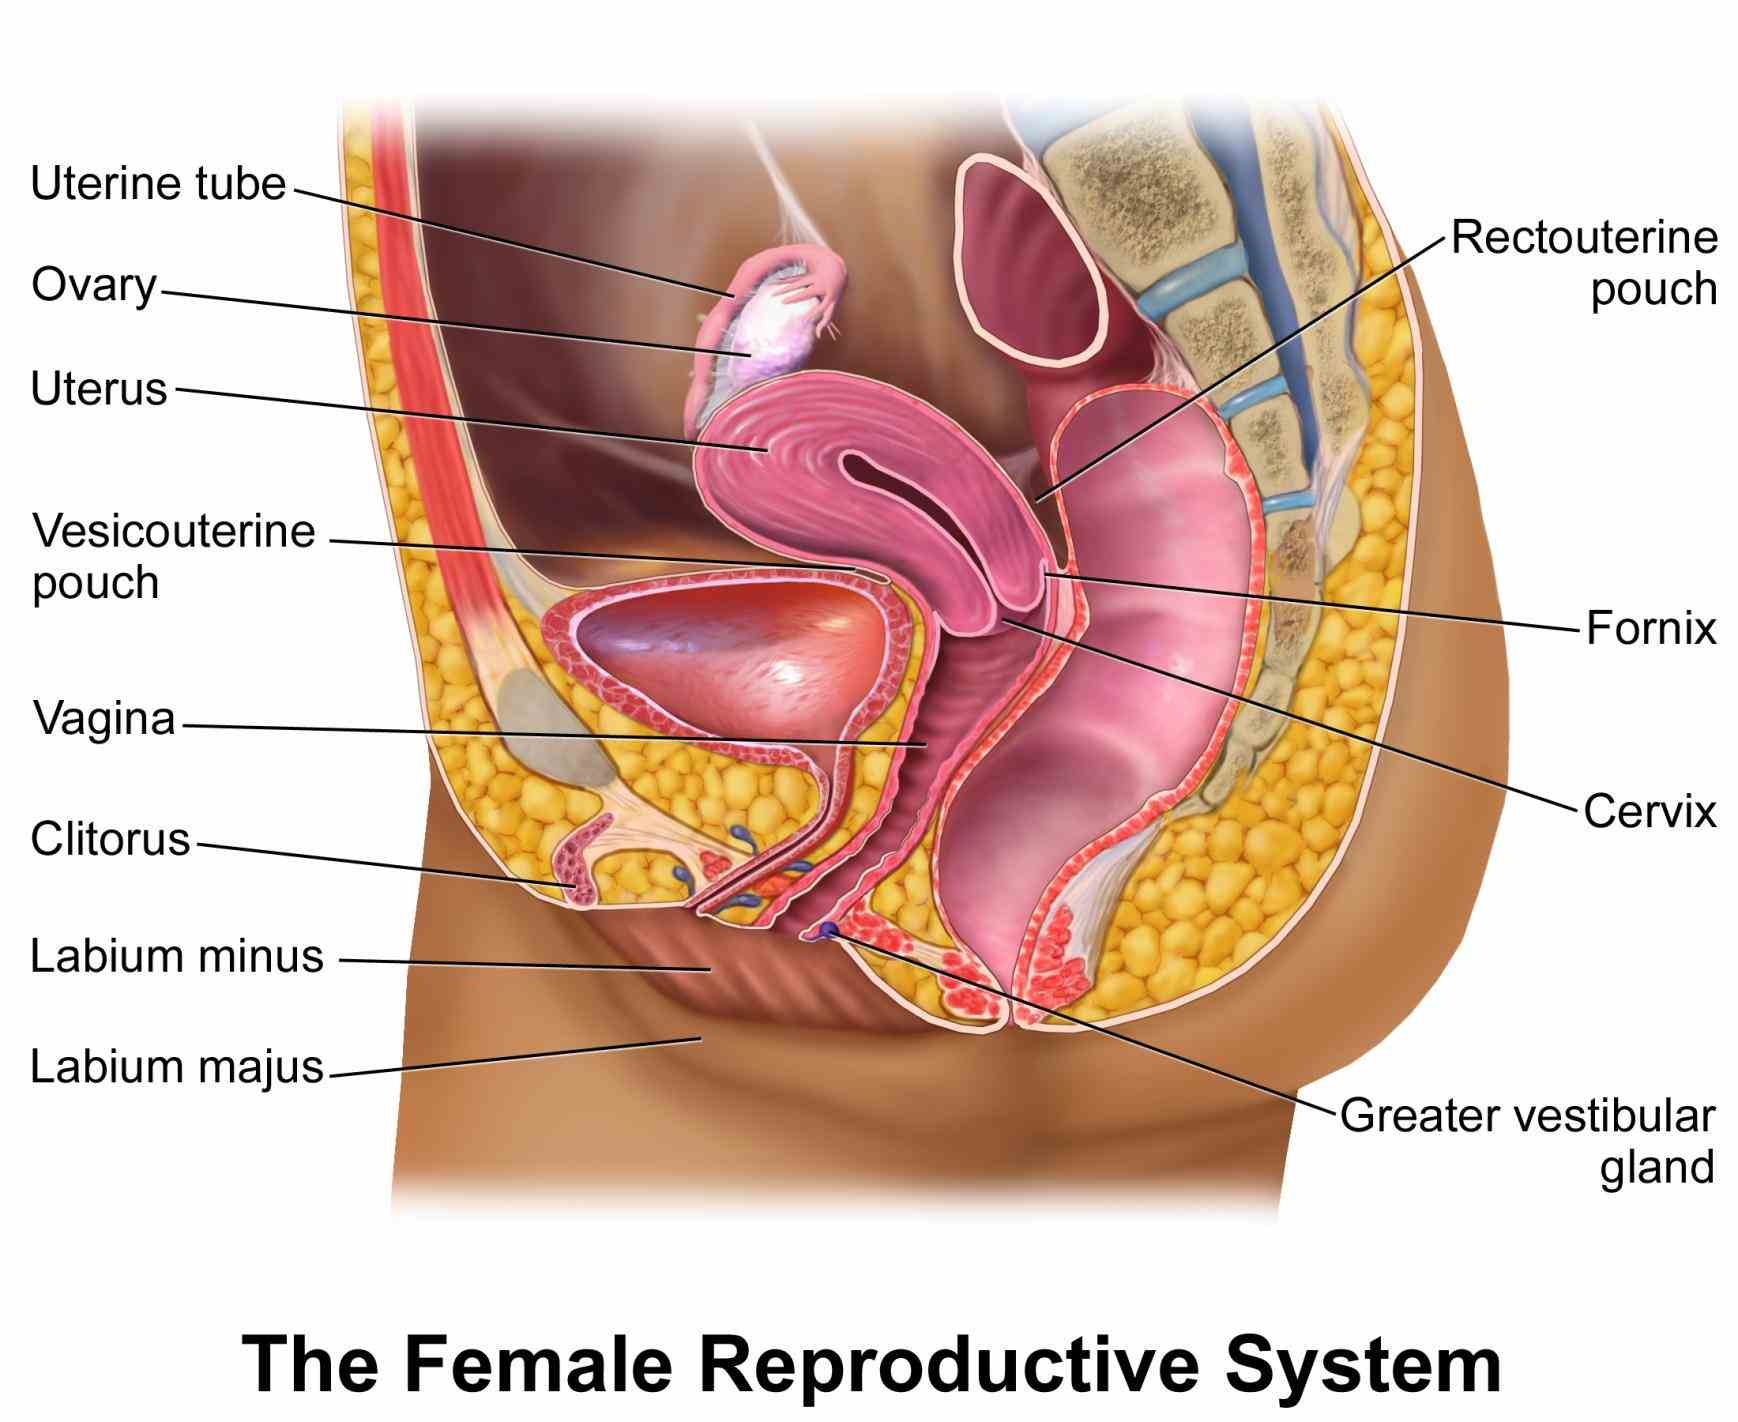 de Major Organs Of The Reproductive System And Their Functions abr in females the main organs of reproductive system